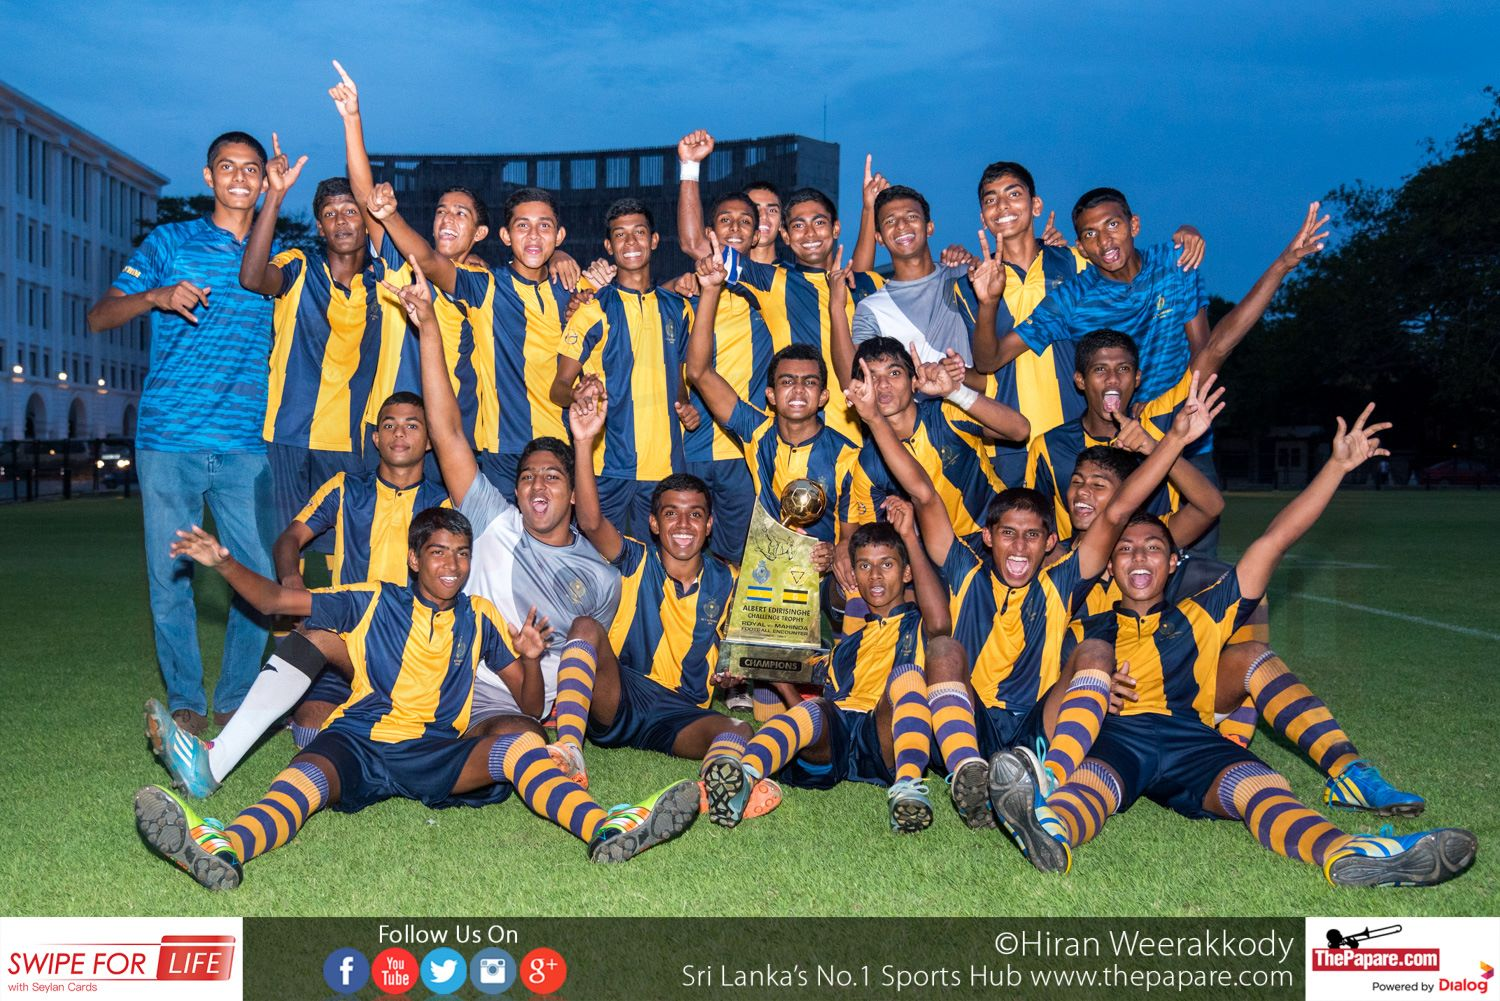 Royal College v Mahinda College